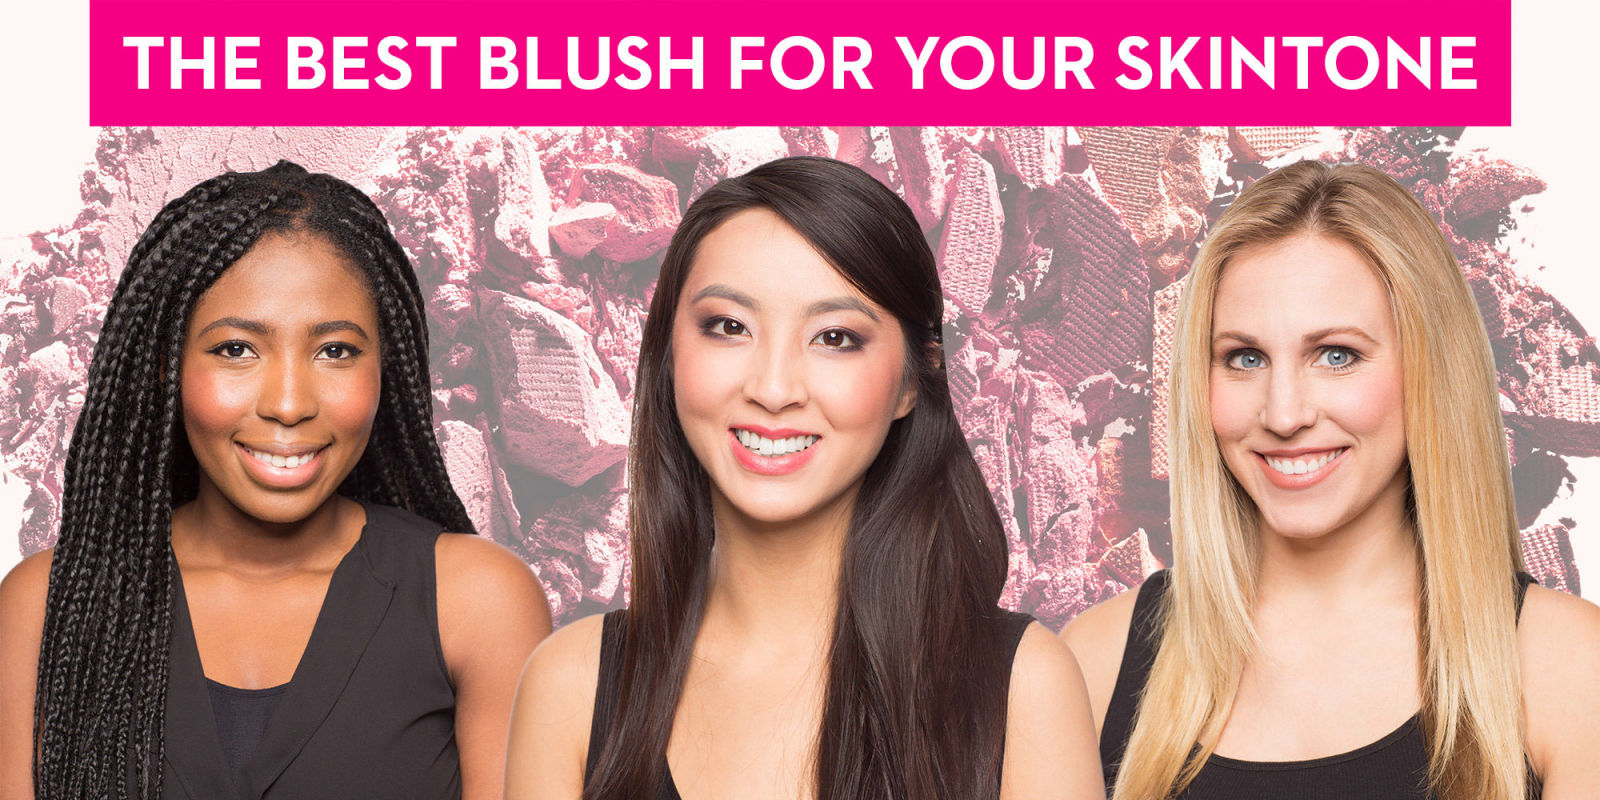 The best blush colors for your skin tone how to pick a the best blush colors for your skin tone how to pick a flattering blush color nvjuhfo Image collections